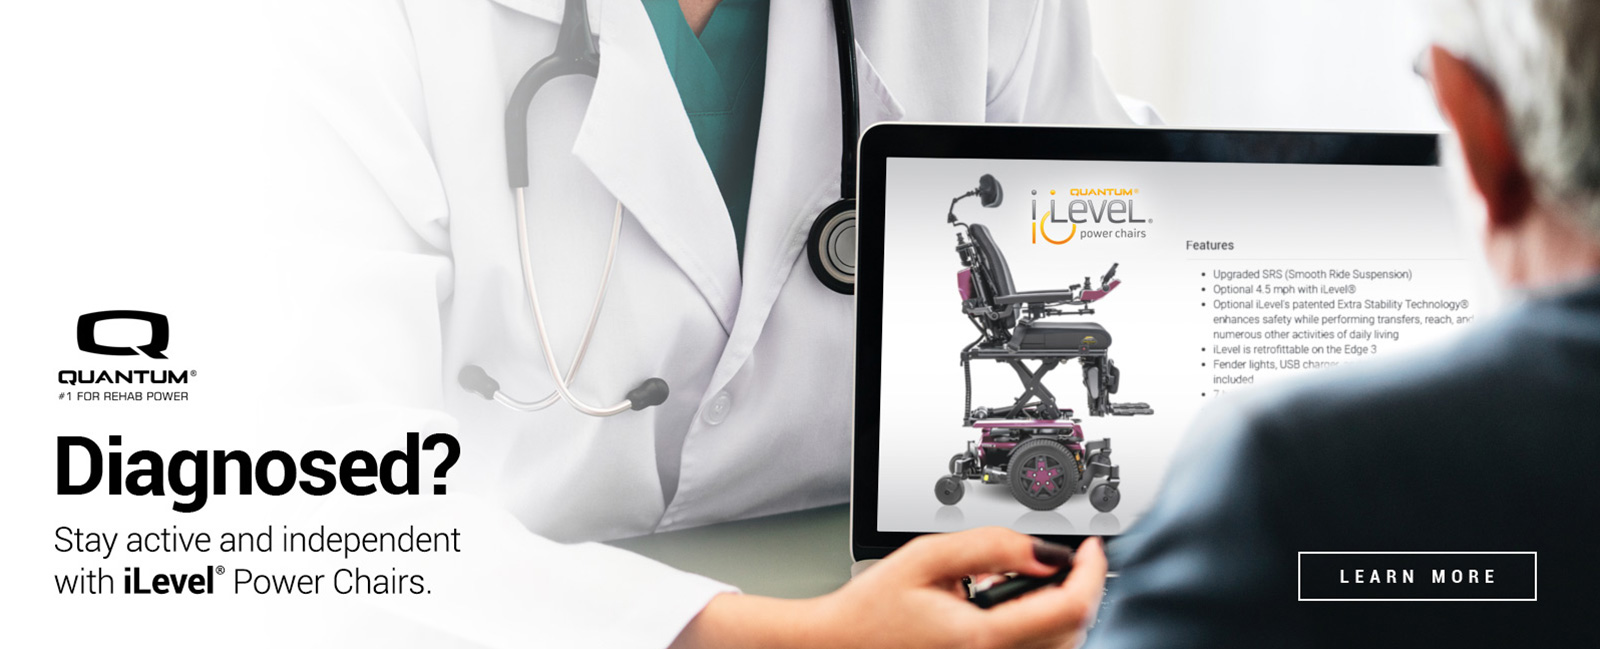 Stay active and independent with iLevel Power Chairs.